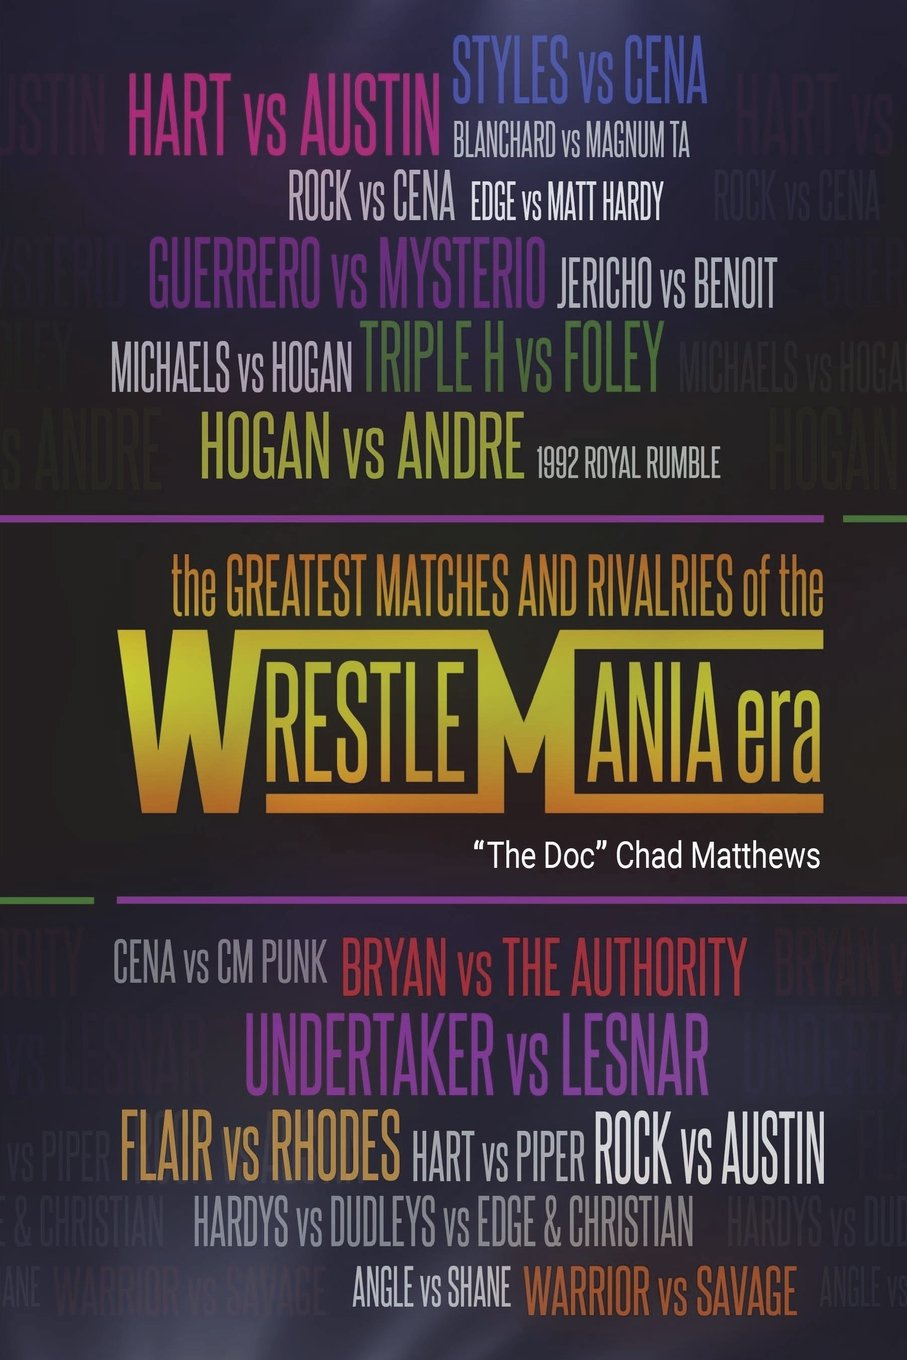 The Greatest Matches and Rivalries of the WrestleMania Era: The Doc